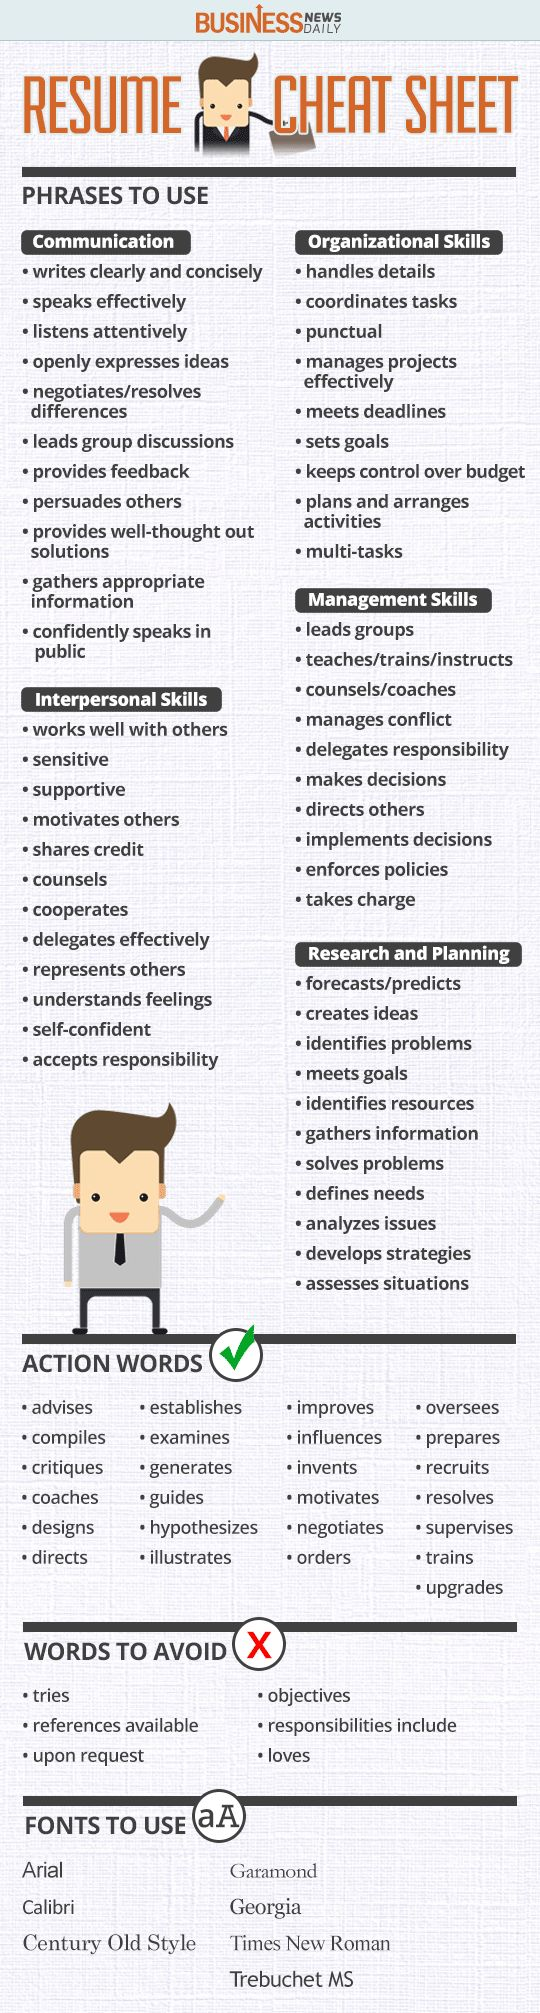 Opposenewapstandardsus  Marvelous  Ideas About Resume On Pinterest  Cv Format Resume  With Engaging Resume Cheat Sheet Infographic Andrews Almost Done With A Complete Unit On Employment Which With Adorable Technical Skills To List On Resume Also Great Resume Example In Addition Resume Template For Nurses And Bartender Job Description For Resume As Well As Professional Summary On A Resume Additionally Formal Resume Template From Pinterestcom With Opposenewapstandardsus  Engaging  Ideas About Resume On Pinterest  Cv Format Resume  With Adorable Resume Cheat Sheet Infographic Andrews Almost Done With A Complete Unit On Employment Which And Marvelous Technical Skills To List On Resume Also Great Resume Example In Addition Resume Template For Nurses From Pinterestcom